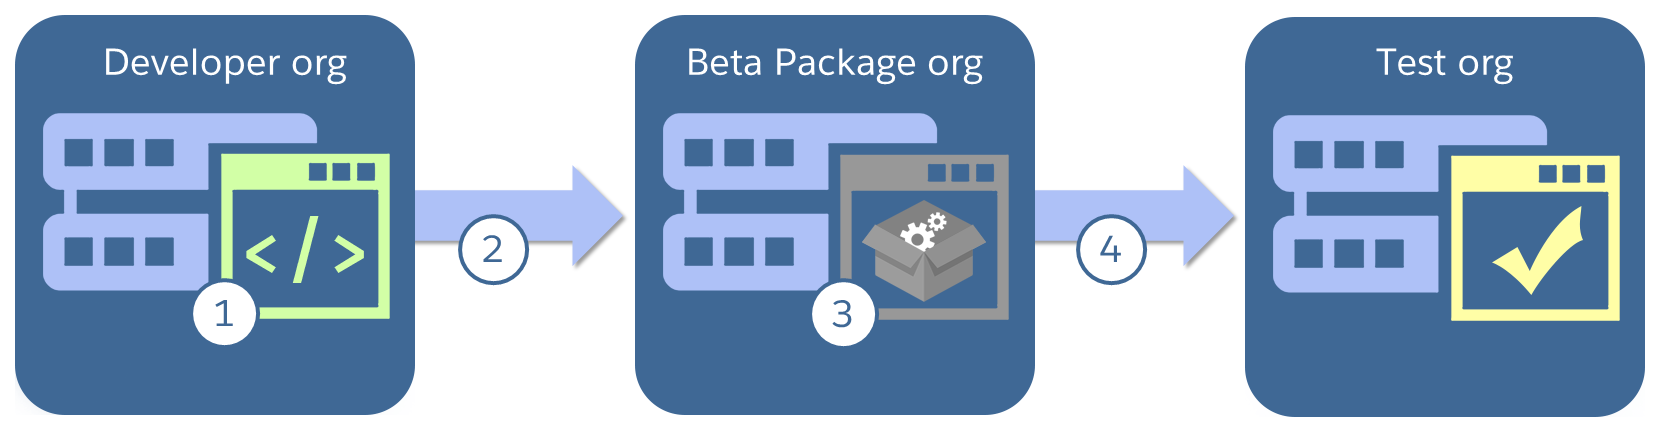 Diagram showing application moving from developer org to beta package org to test org